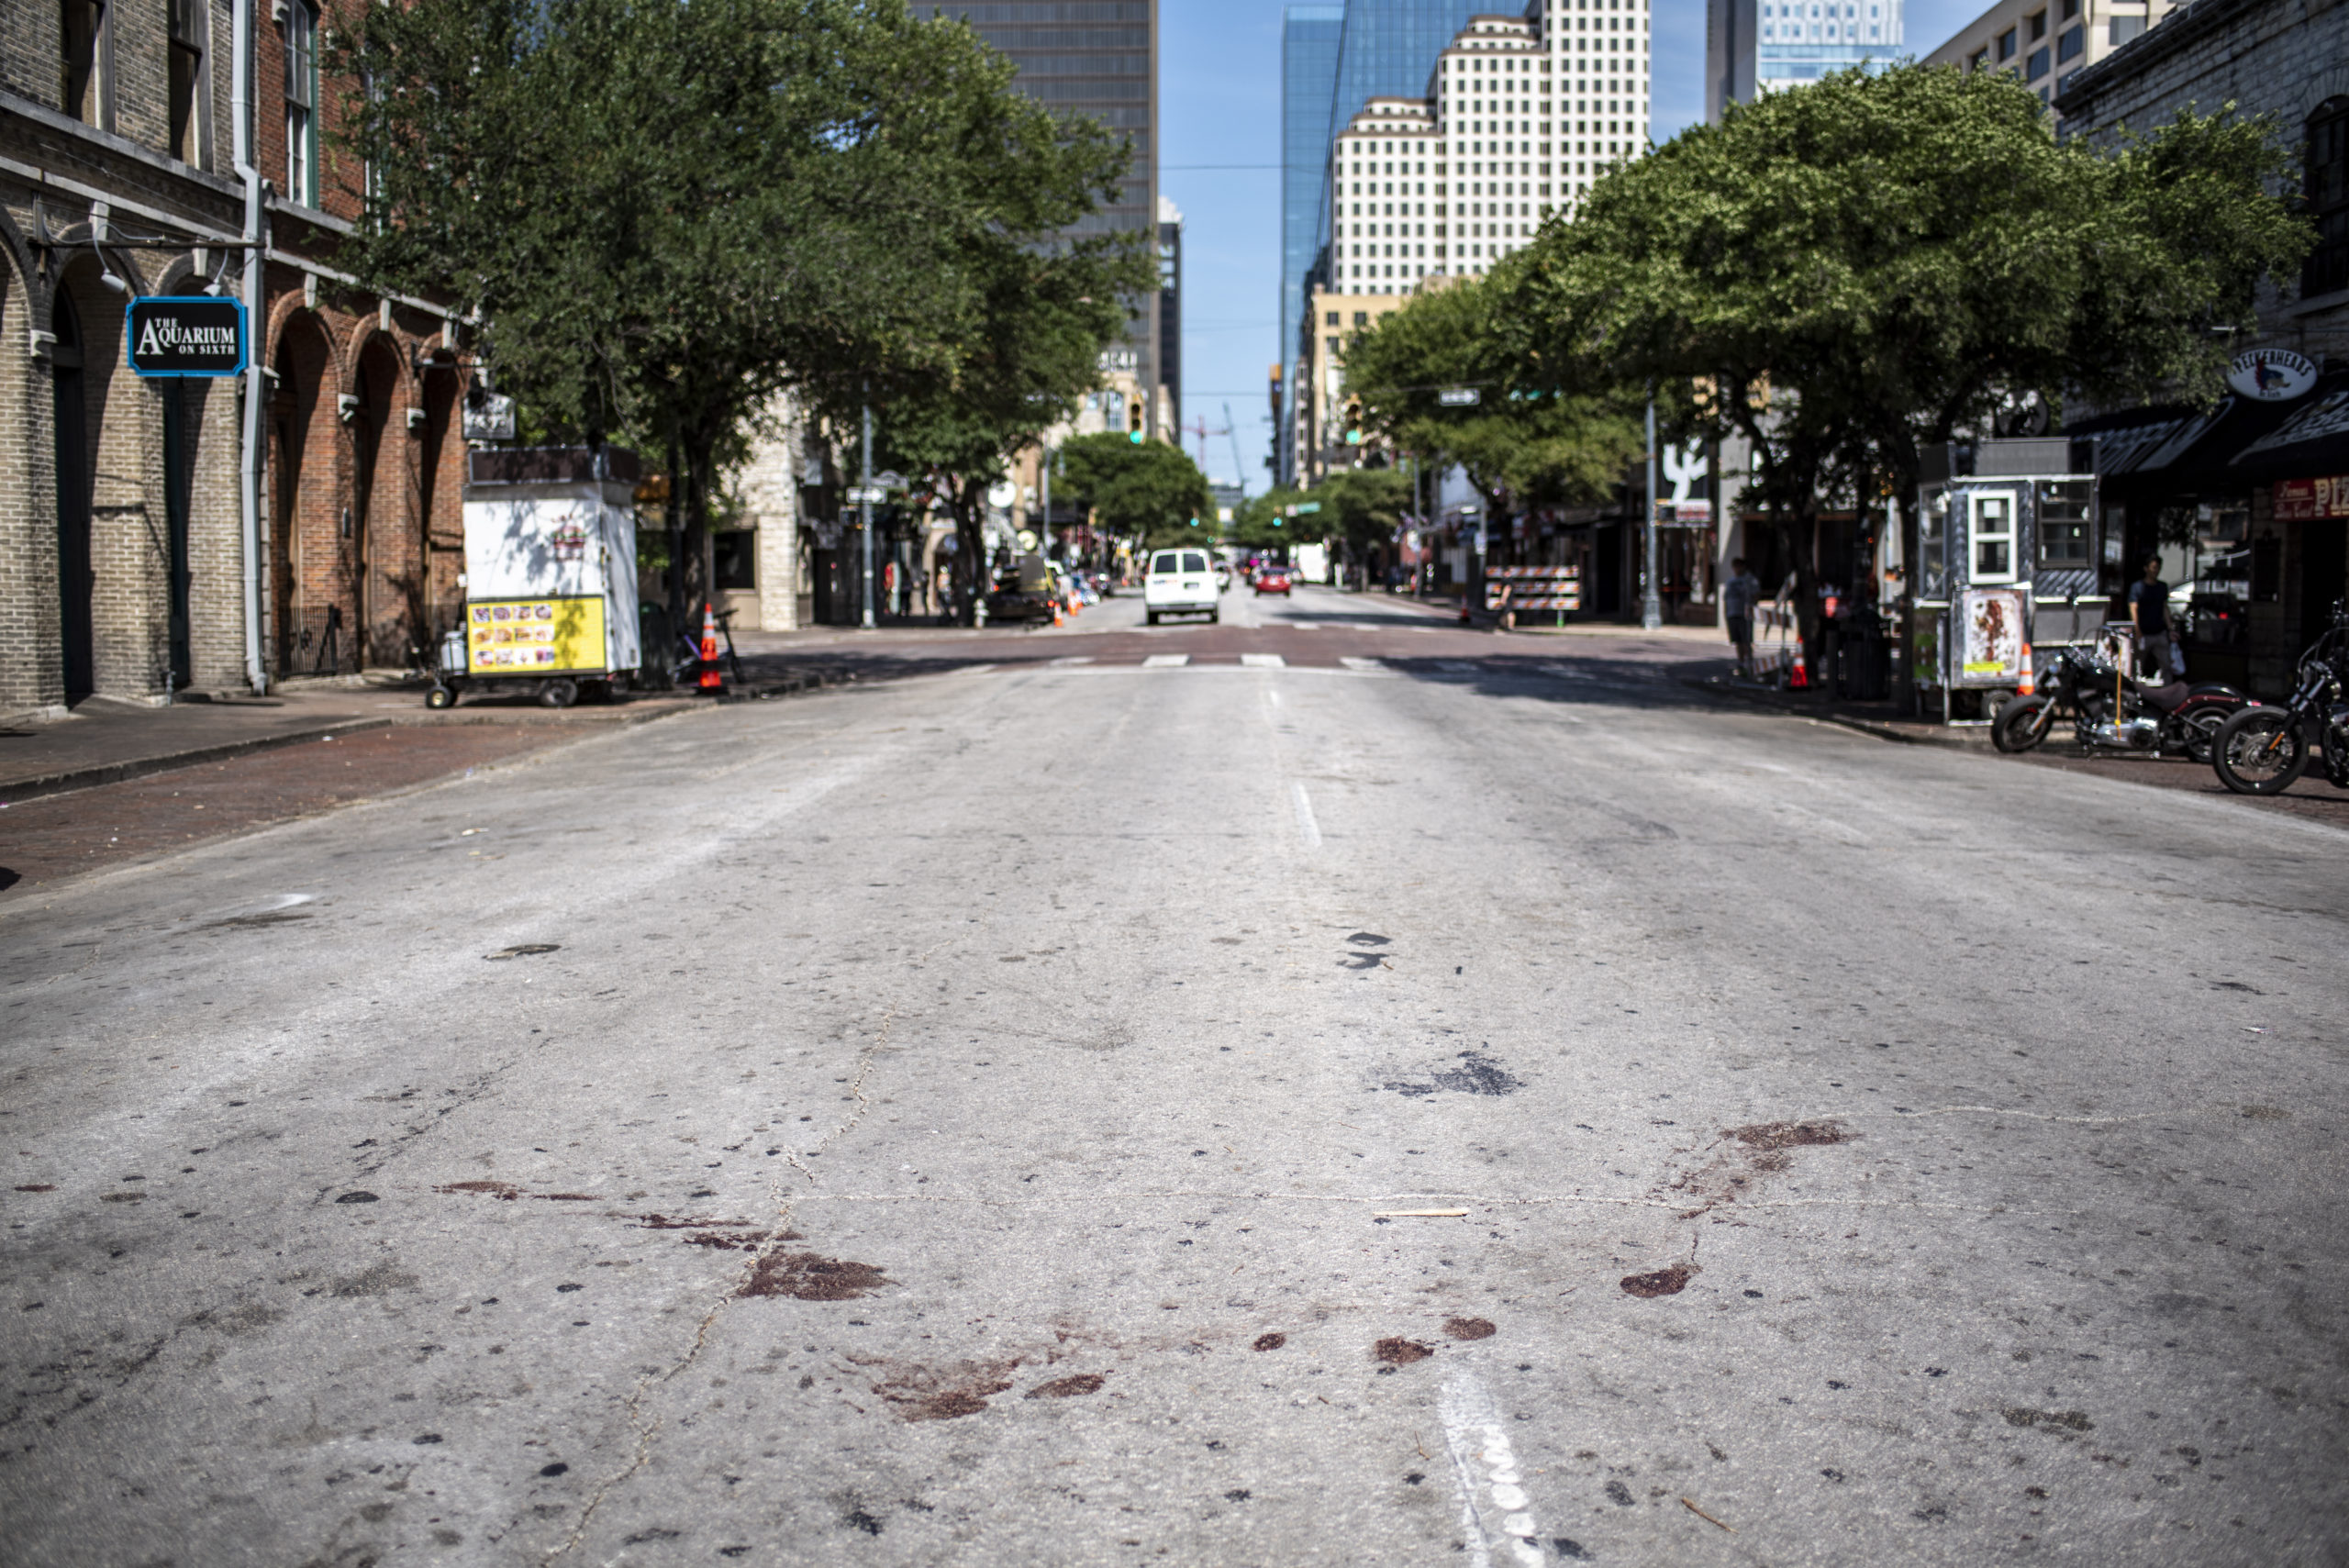 The street is stained with blood near the scene of a shooting on June 12, 2021 in Austin, Texas. At least 13 people were taken to hospitals after a shooting happened on Austin's famous 6th Street. The shooter is still at large. (Photo by Sergio Flores/Getty Images)